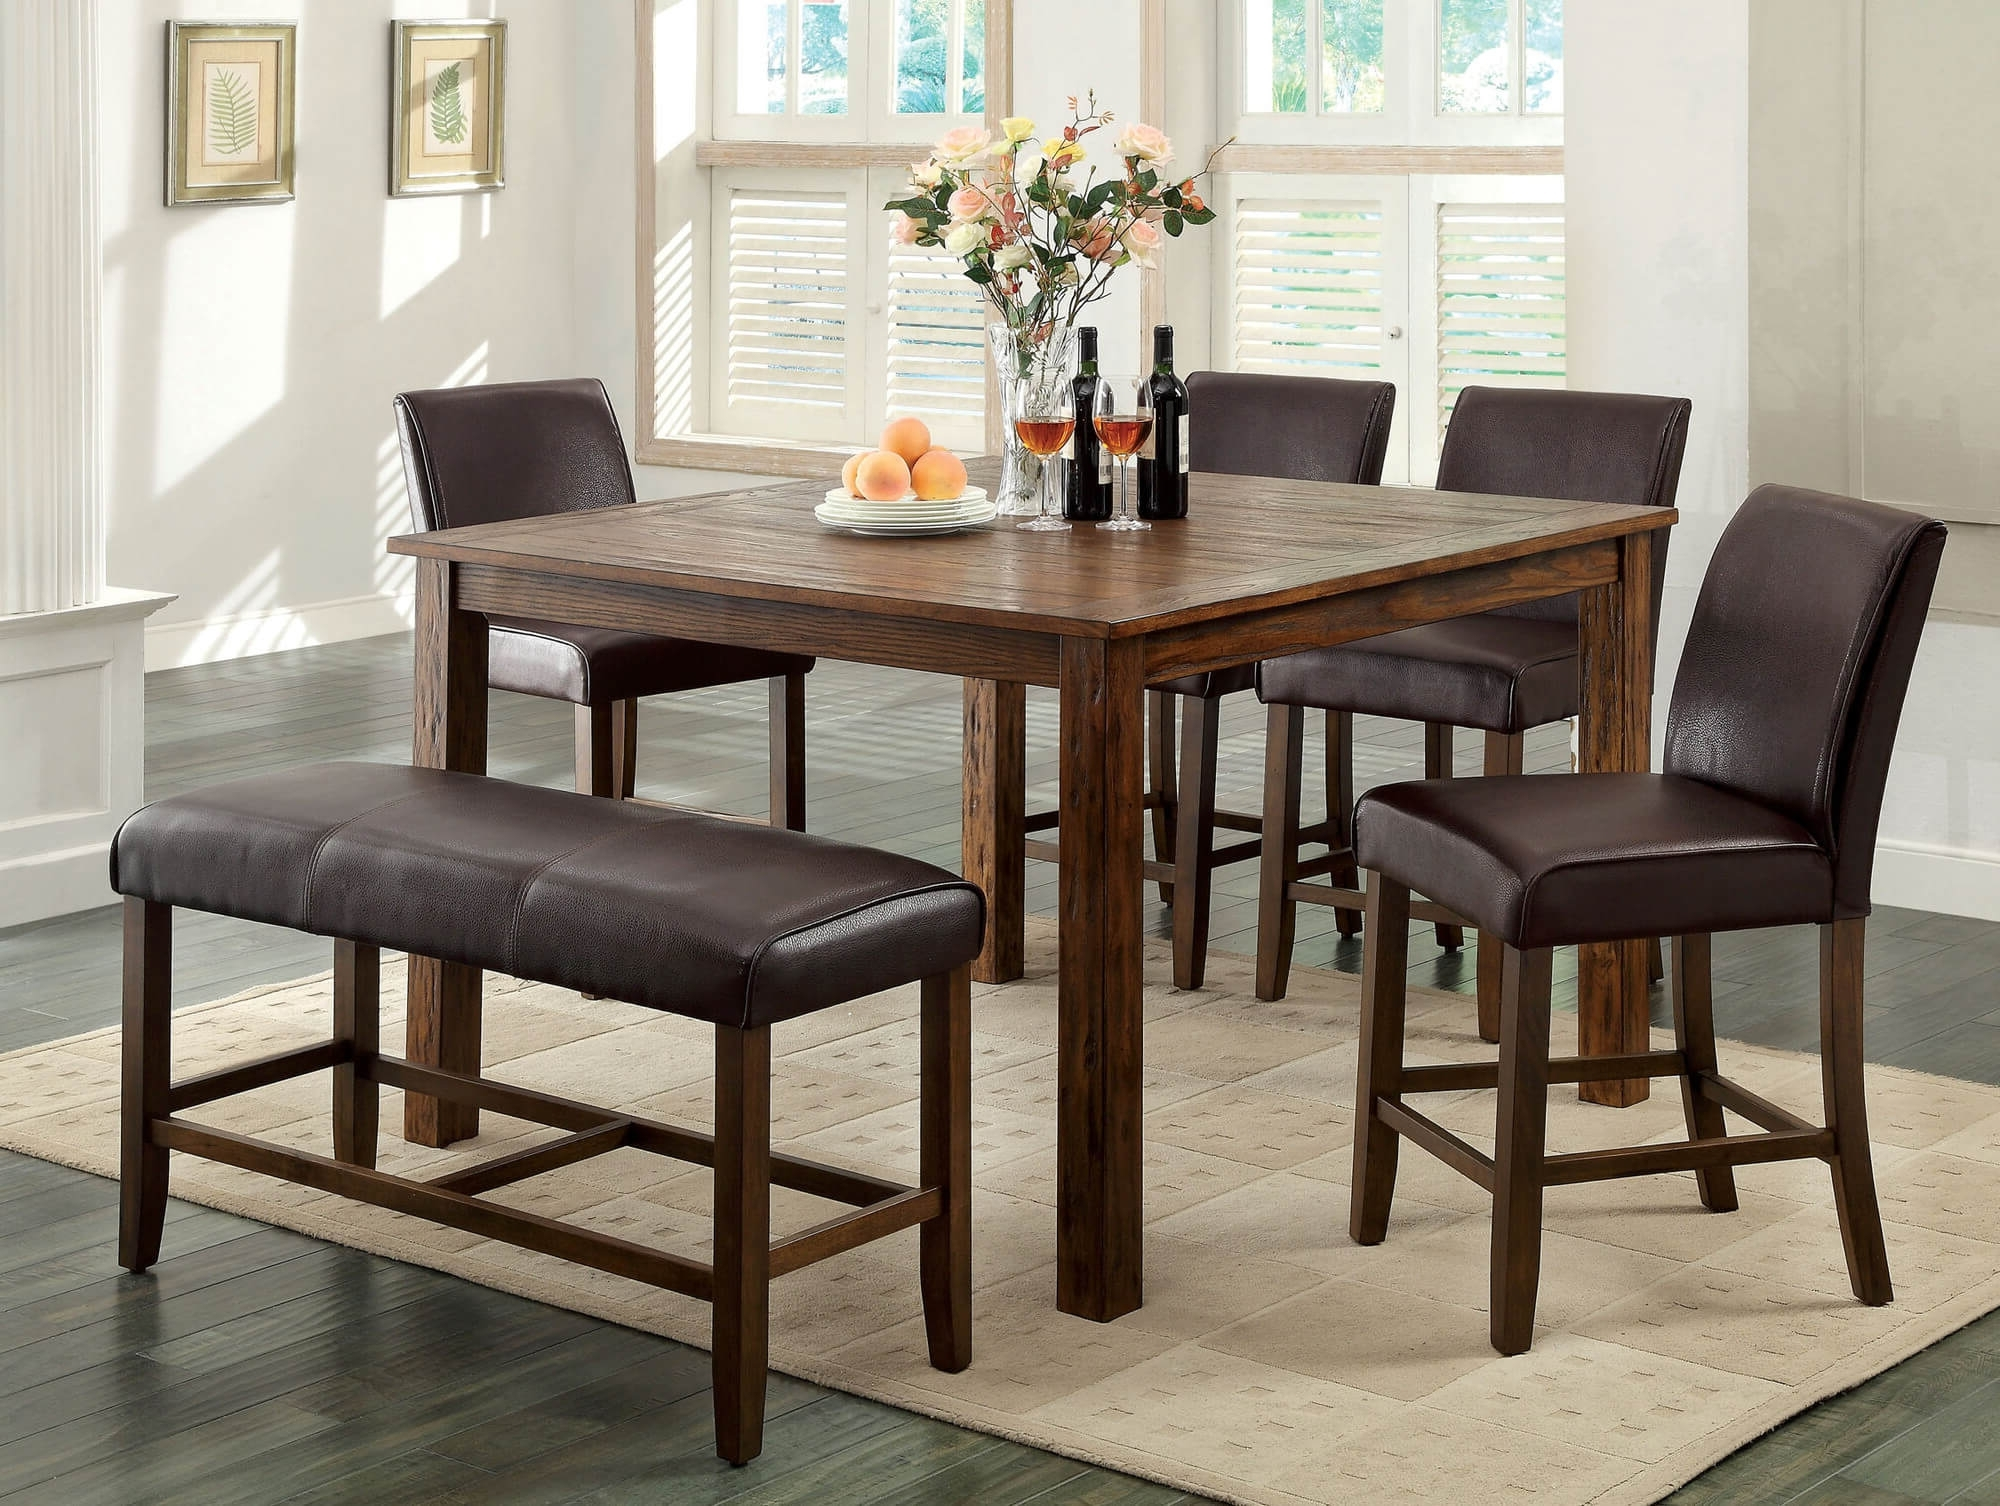 Indoor Picnic Style Dining Tables With Regard To Most Popular 26 Dining Room Sets (Big And Small) With Bench Seating (2018) (View 18 of 25)